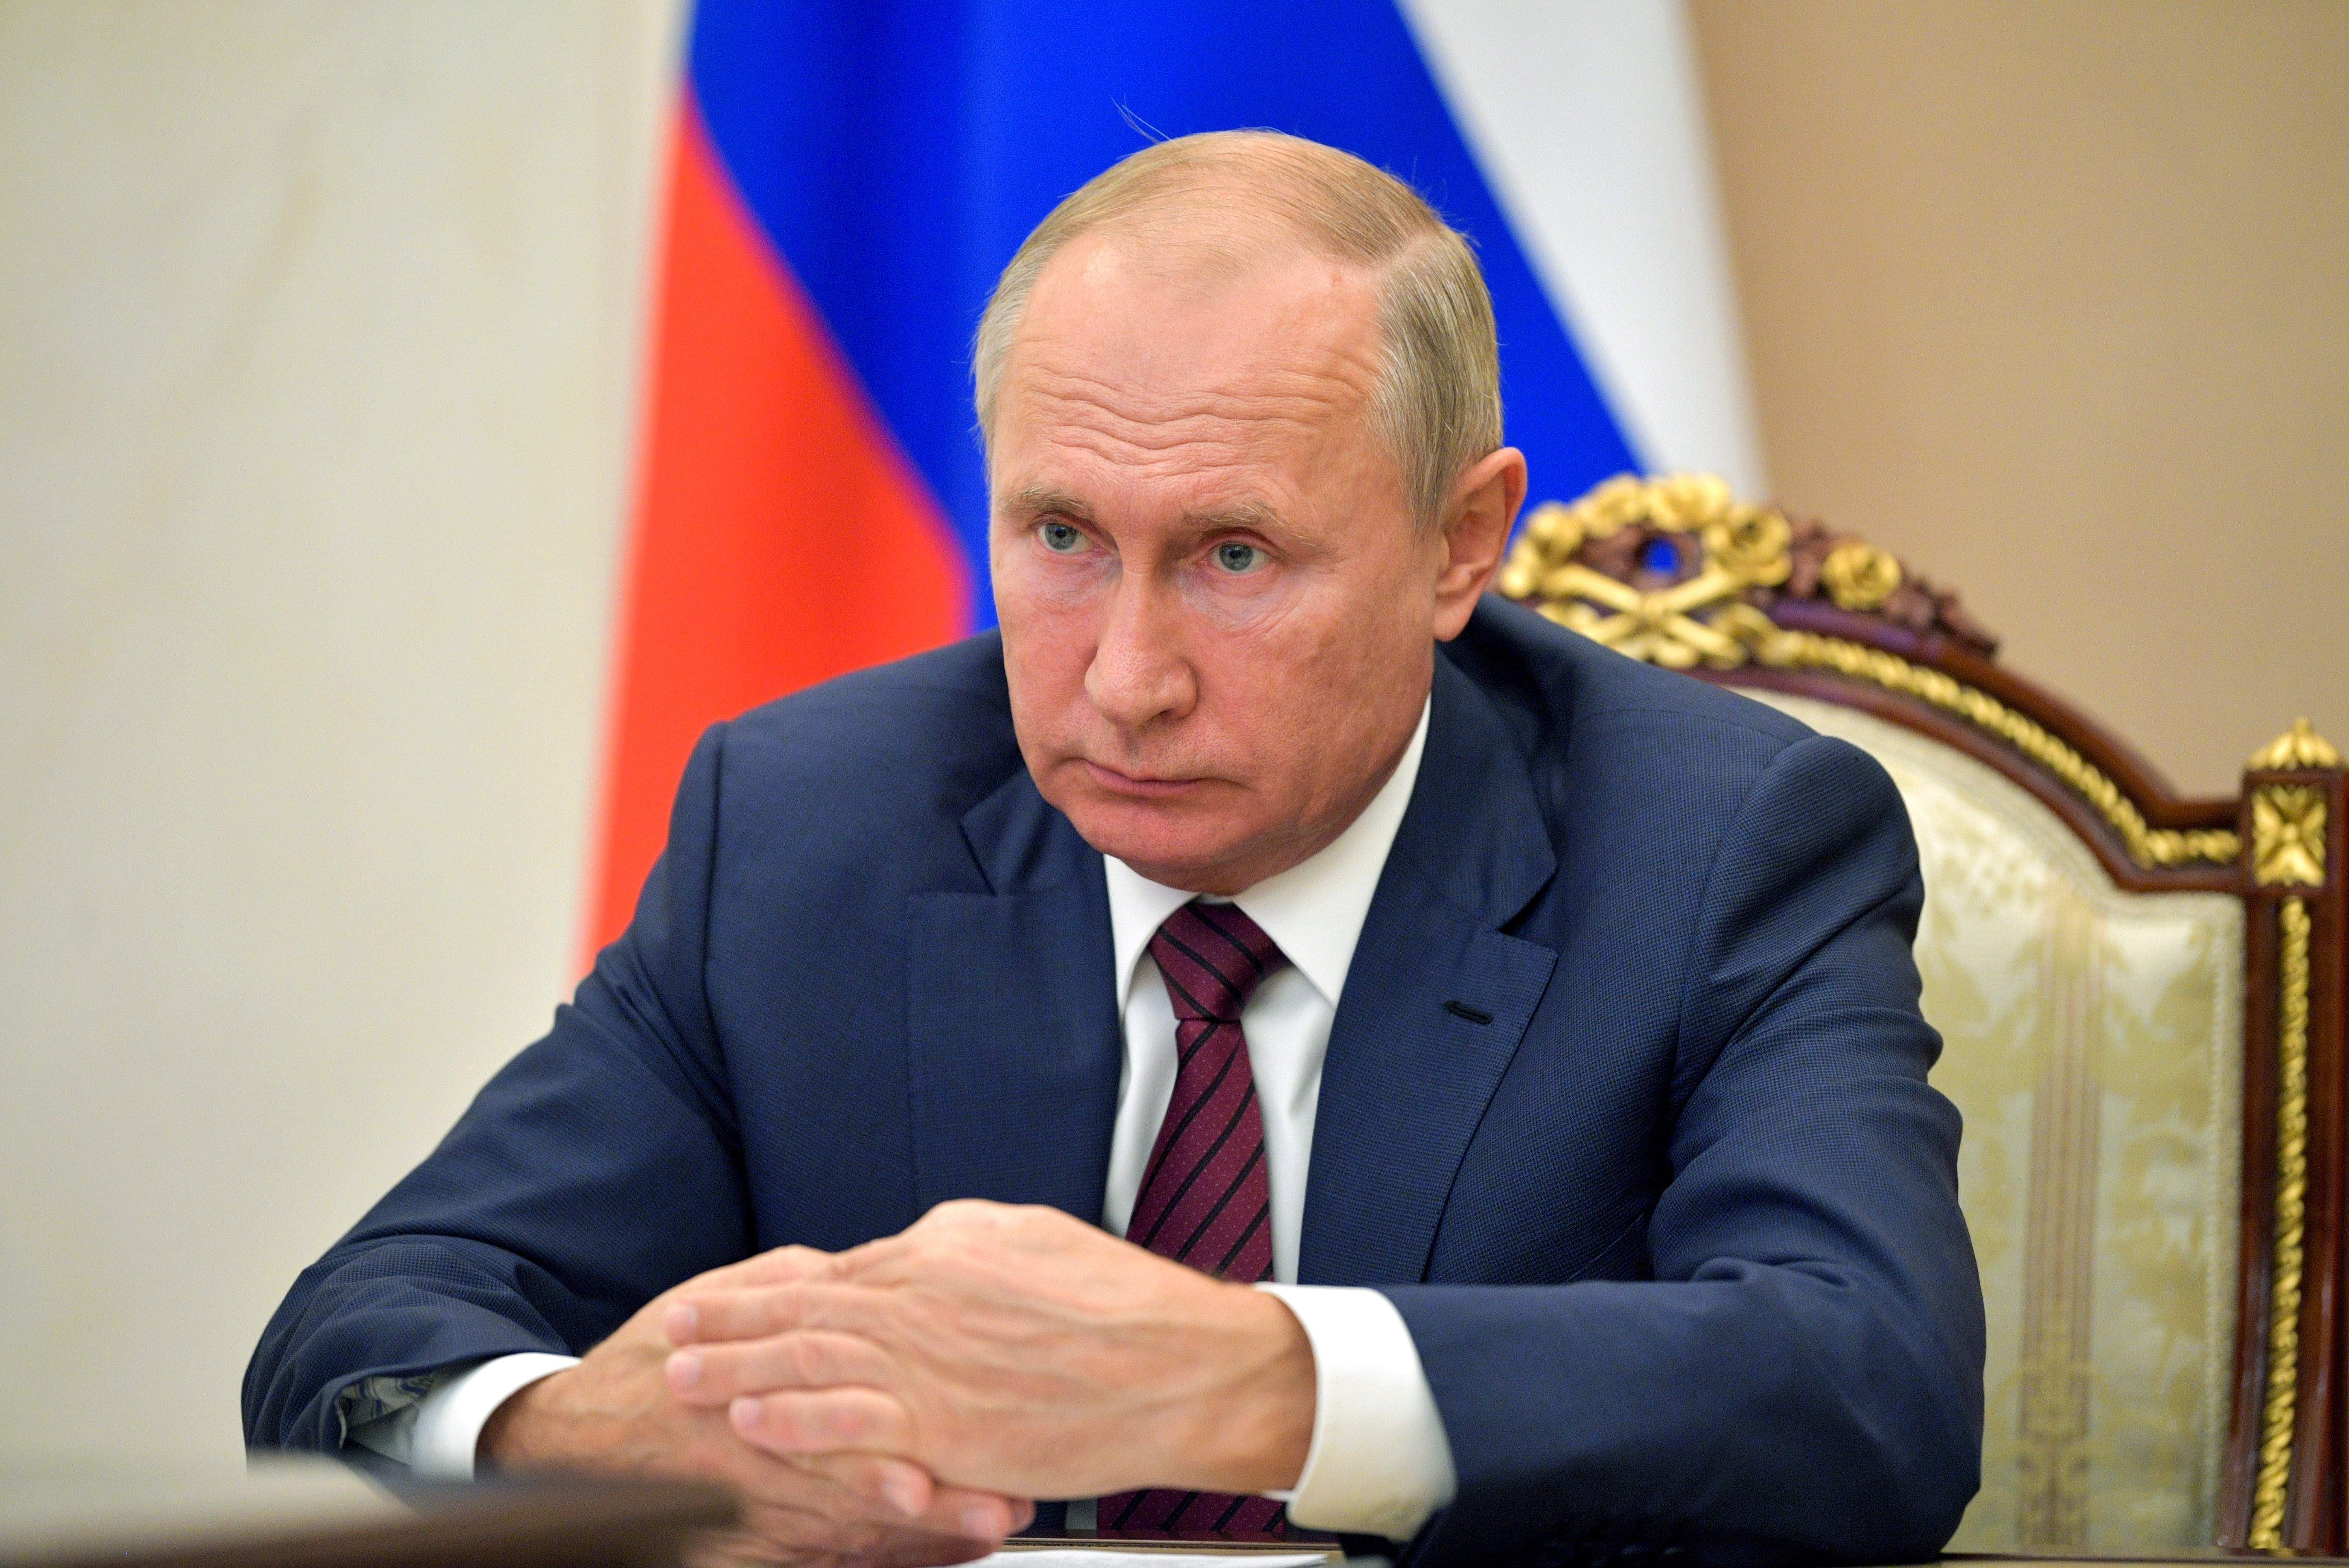 Absolute Nonsense Russia Rejects Claims Putin Is Unwell And Planning To Step Down The Independent